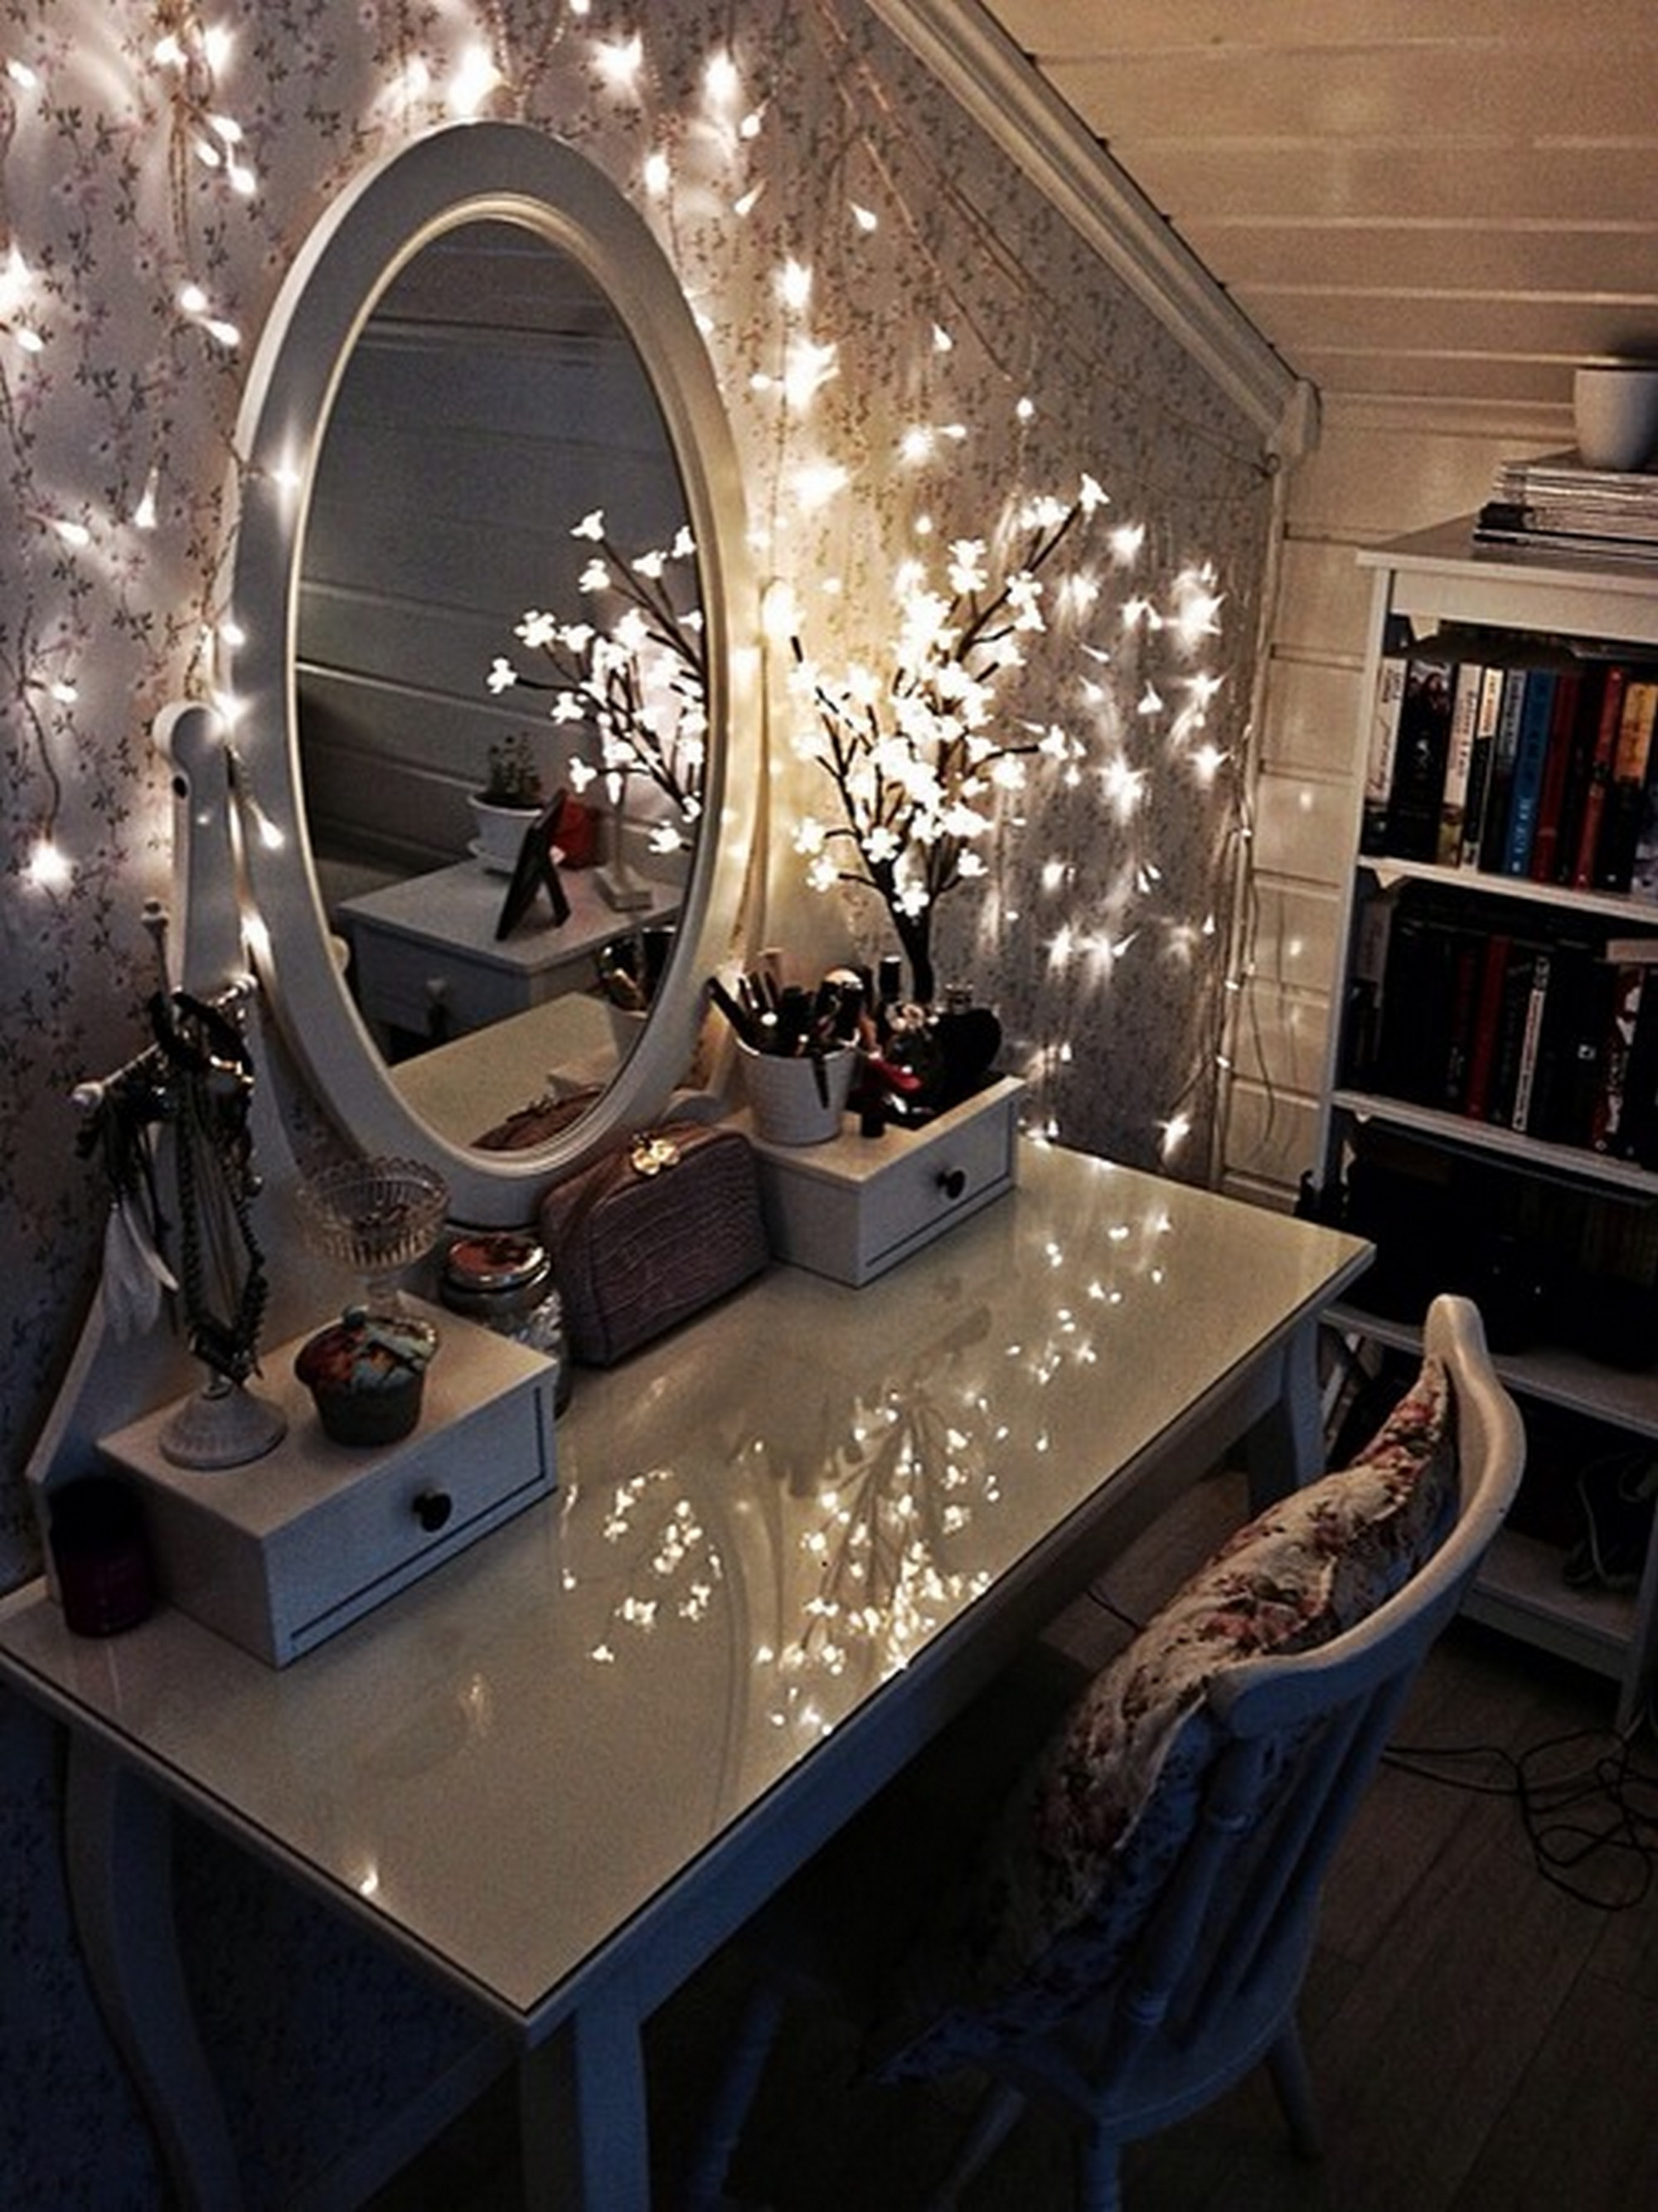 General bedroom lighting ideas and tips - Interior Design ... on Mirrors For Teenage Bedroom  id=73669